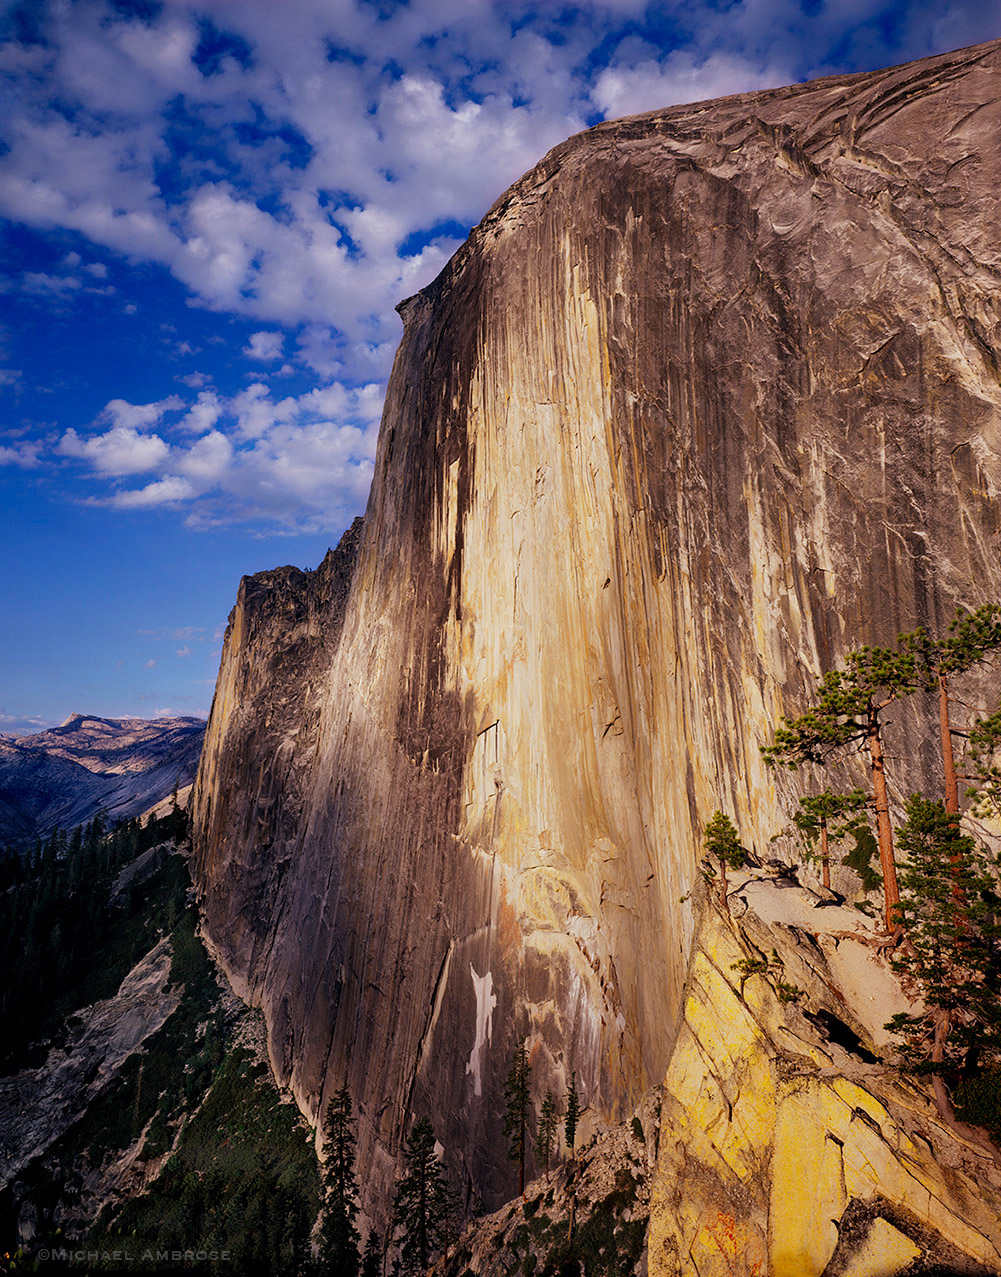 Northwest face of Half dome in Yosemite National Park